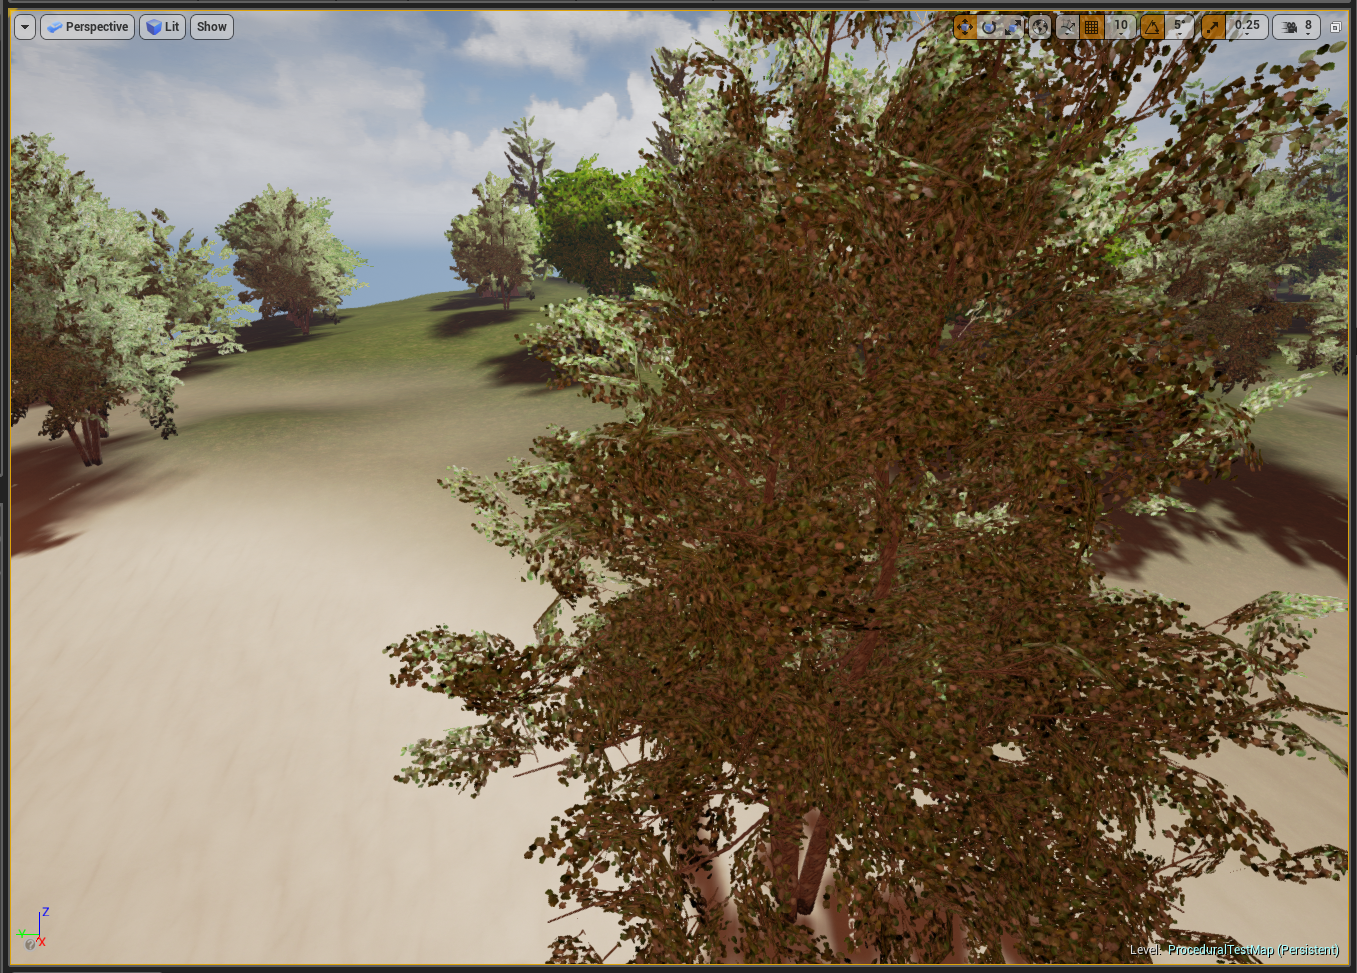 Closer view of a procedural map, showing transition from sandy to grassy terrain